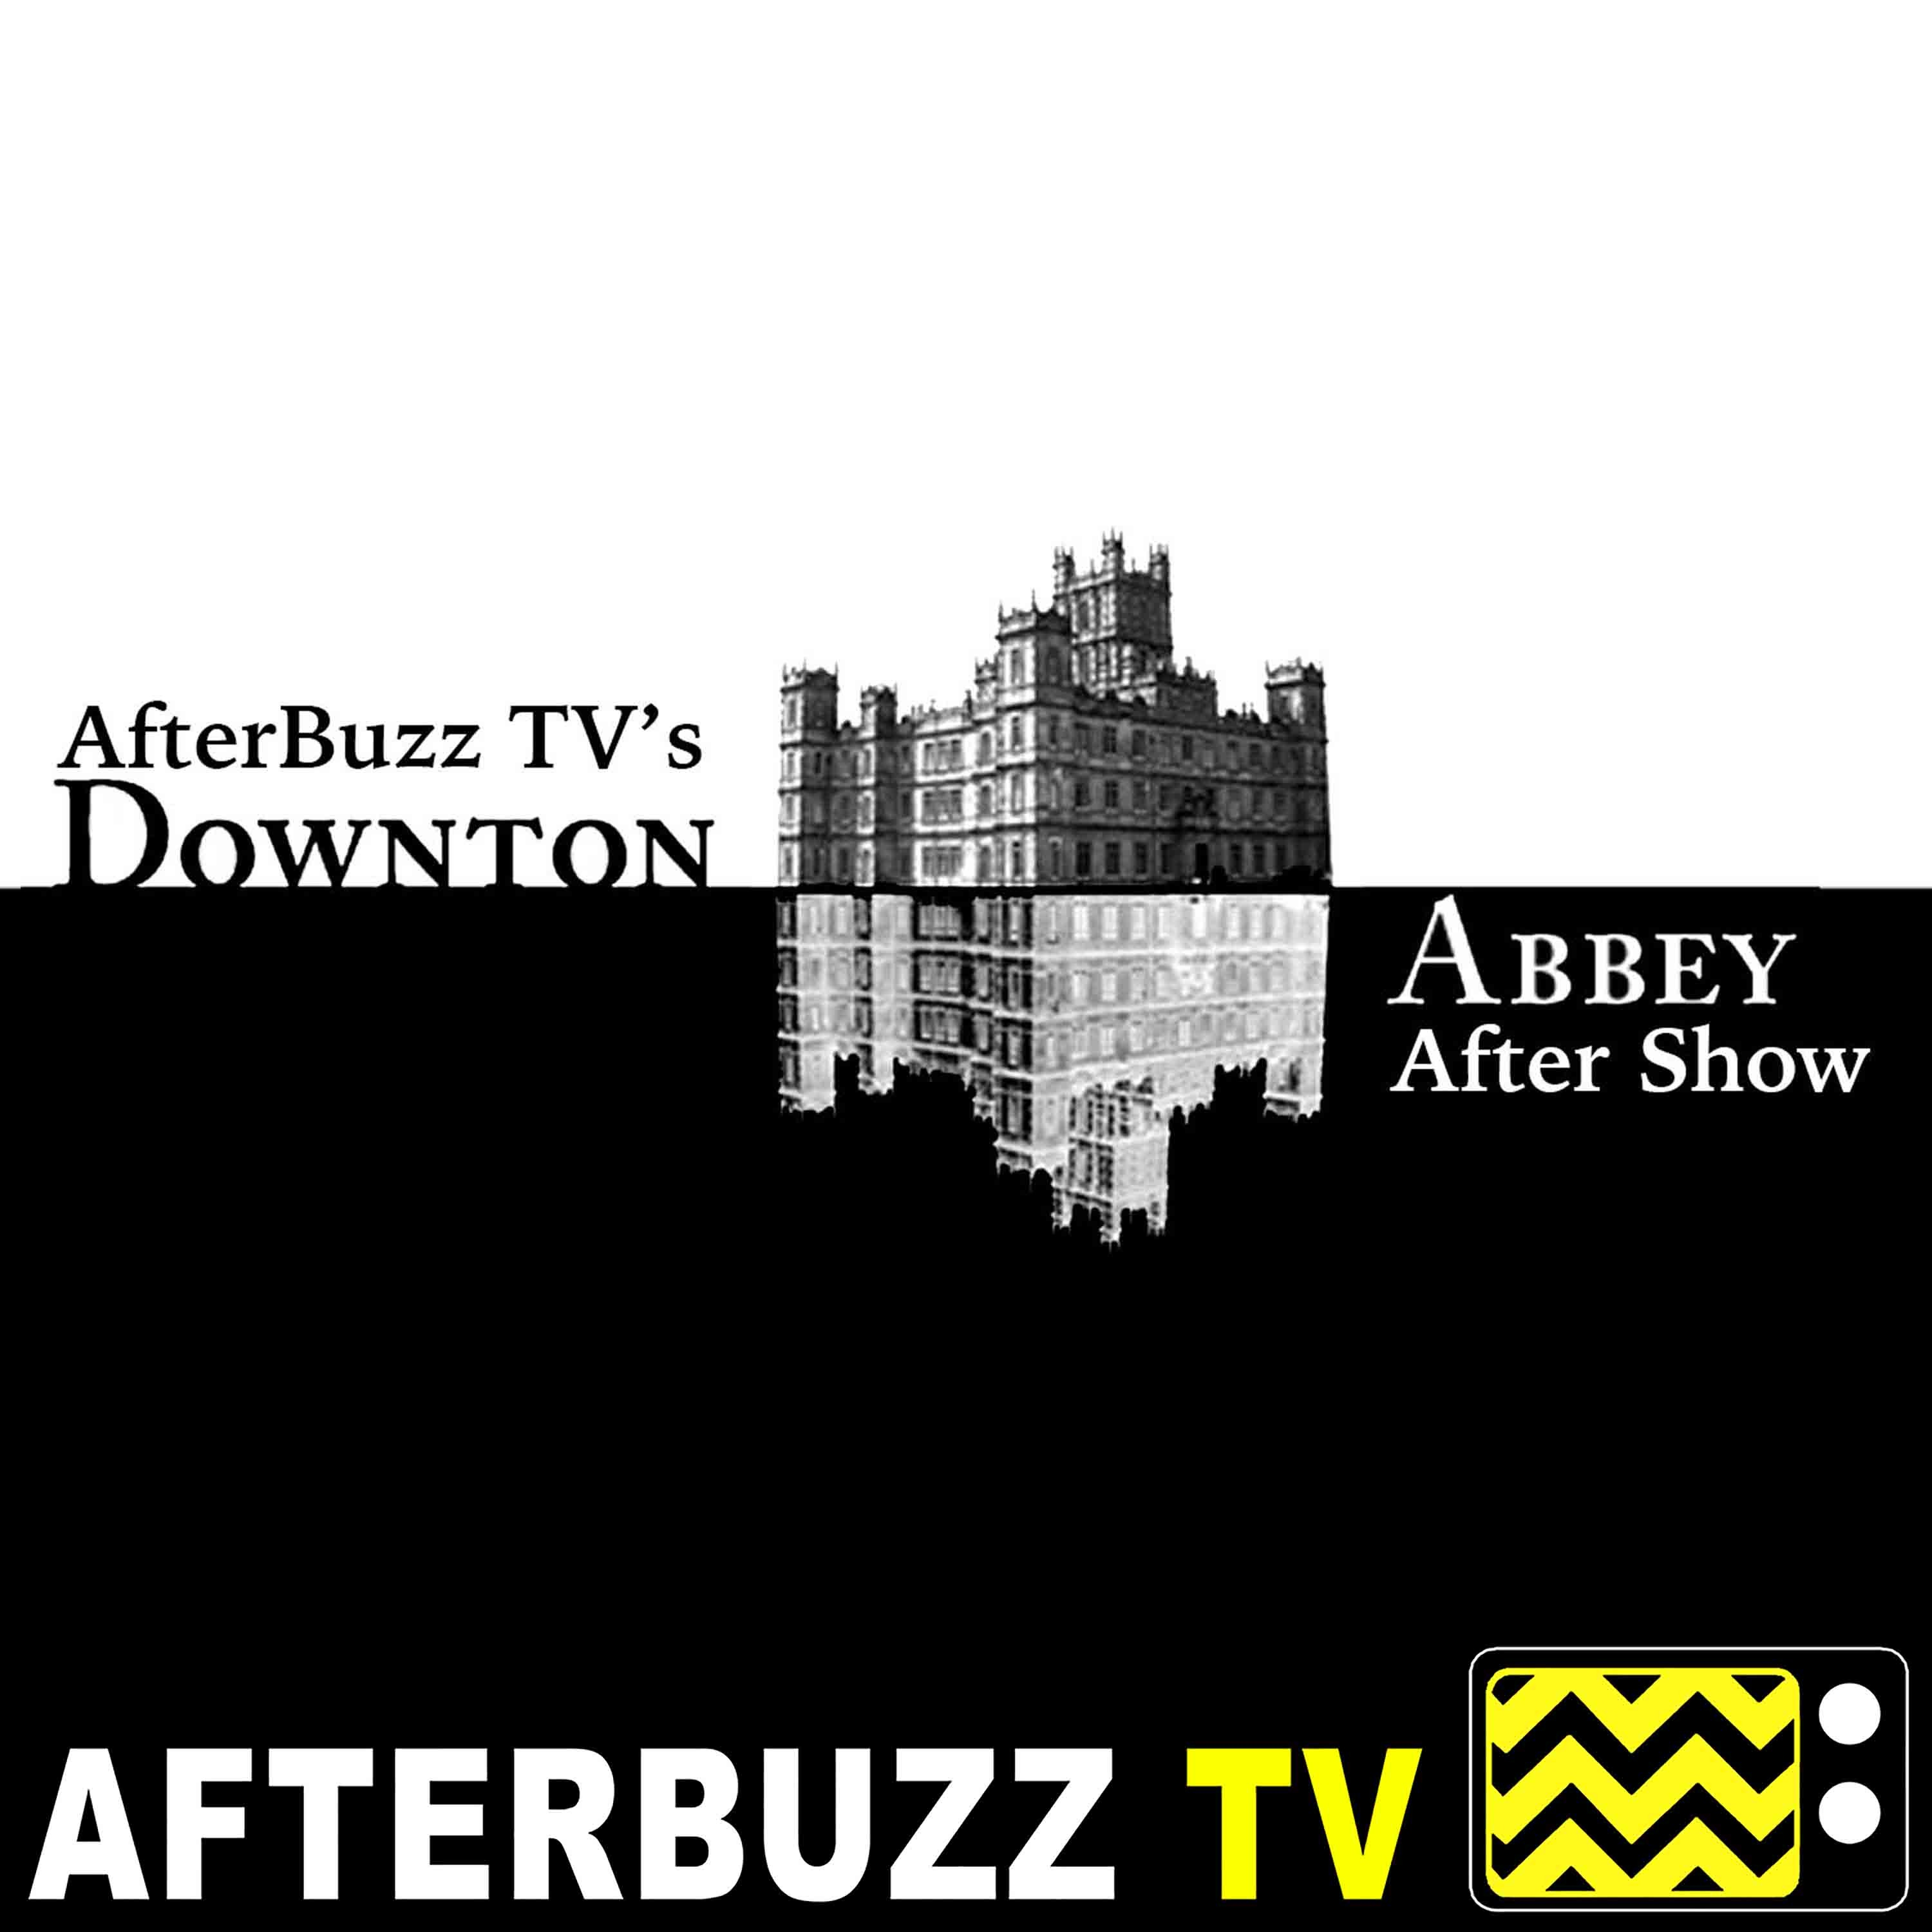 Downton Abbey UK S:6 | Episode 8 | AfterBuzz TV AfterShow